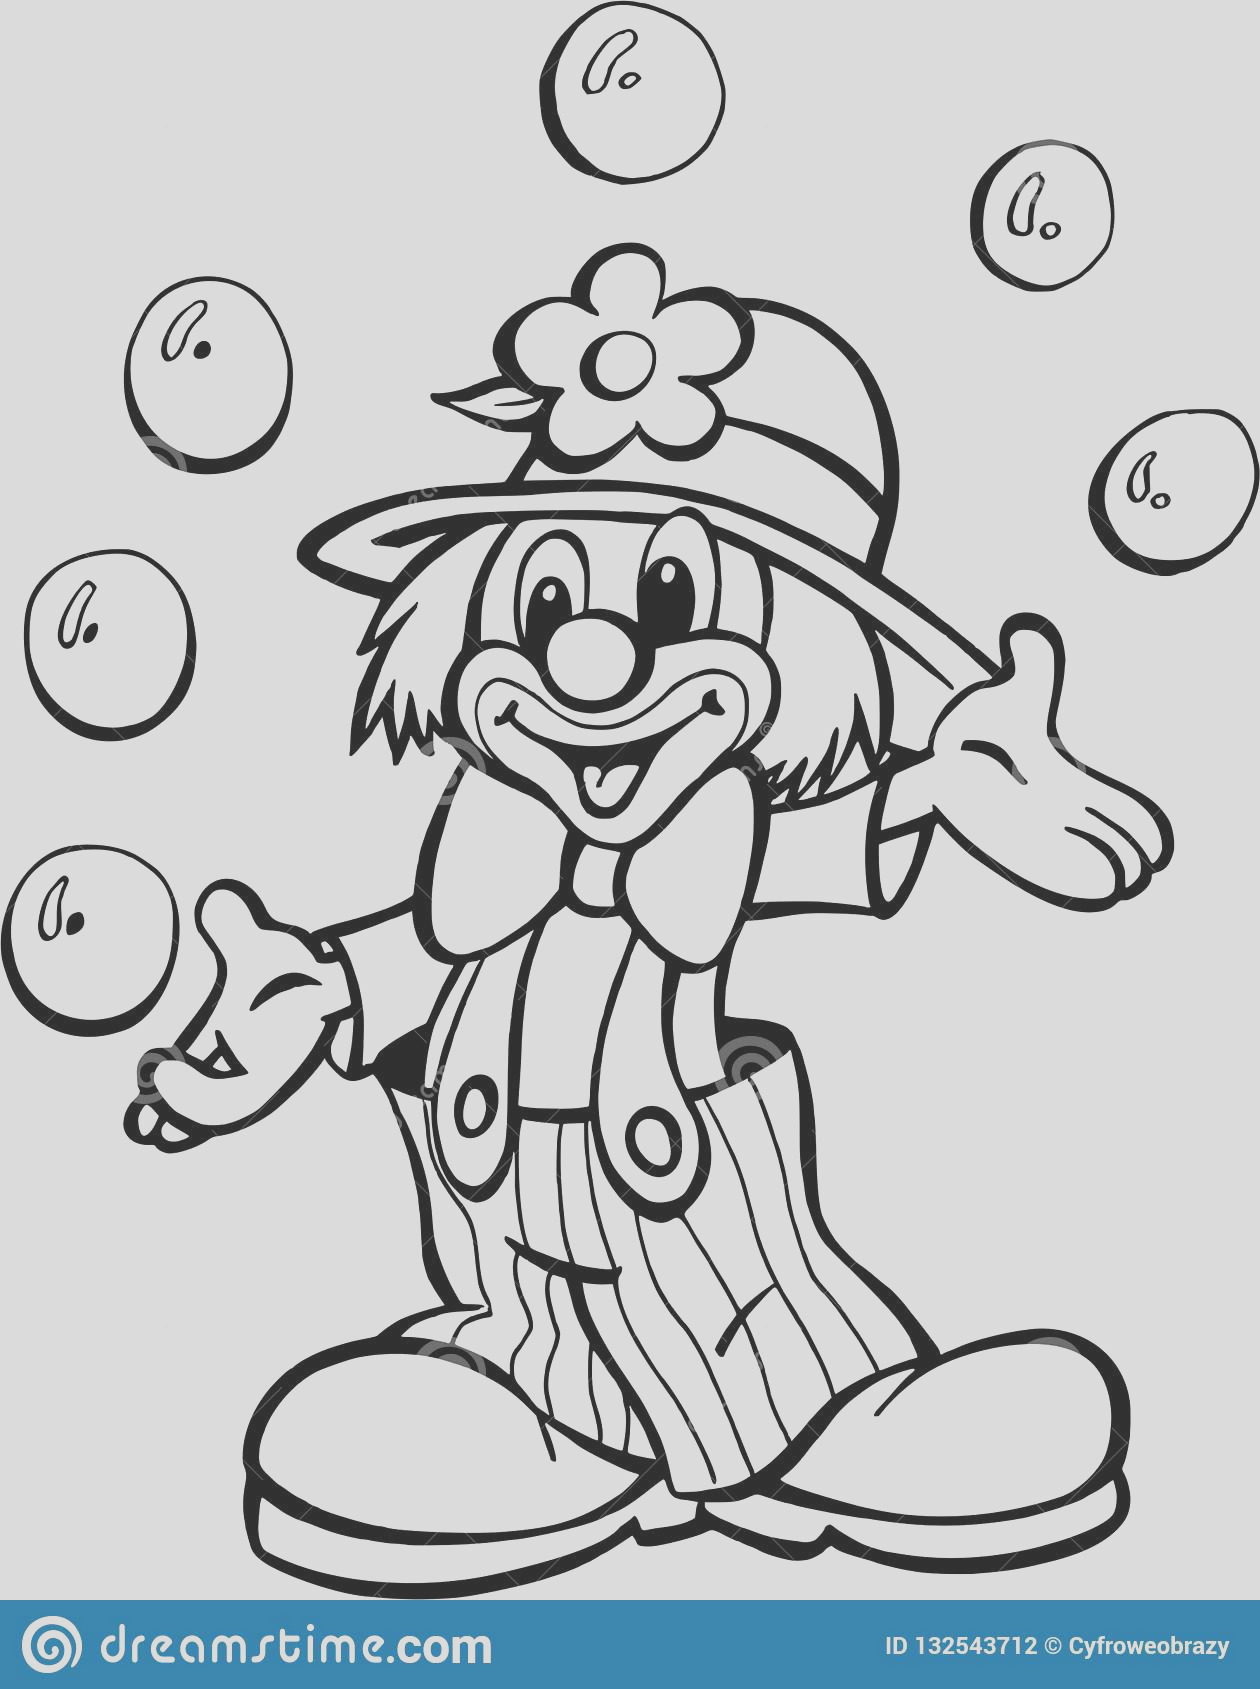 clown circus juggling balls design very good to use coloring pages books screenprinting anything kids image